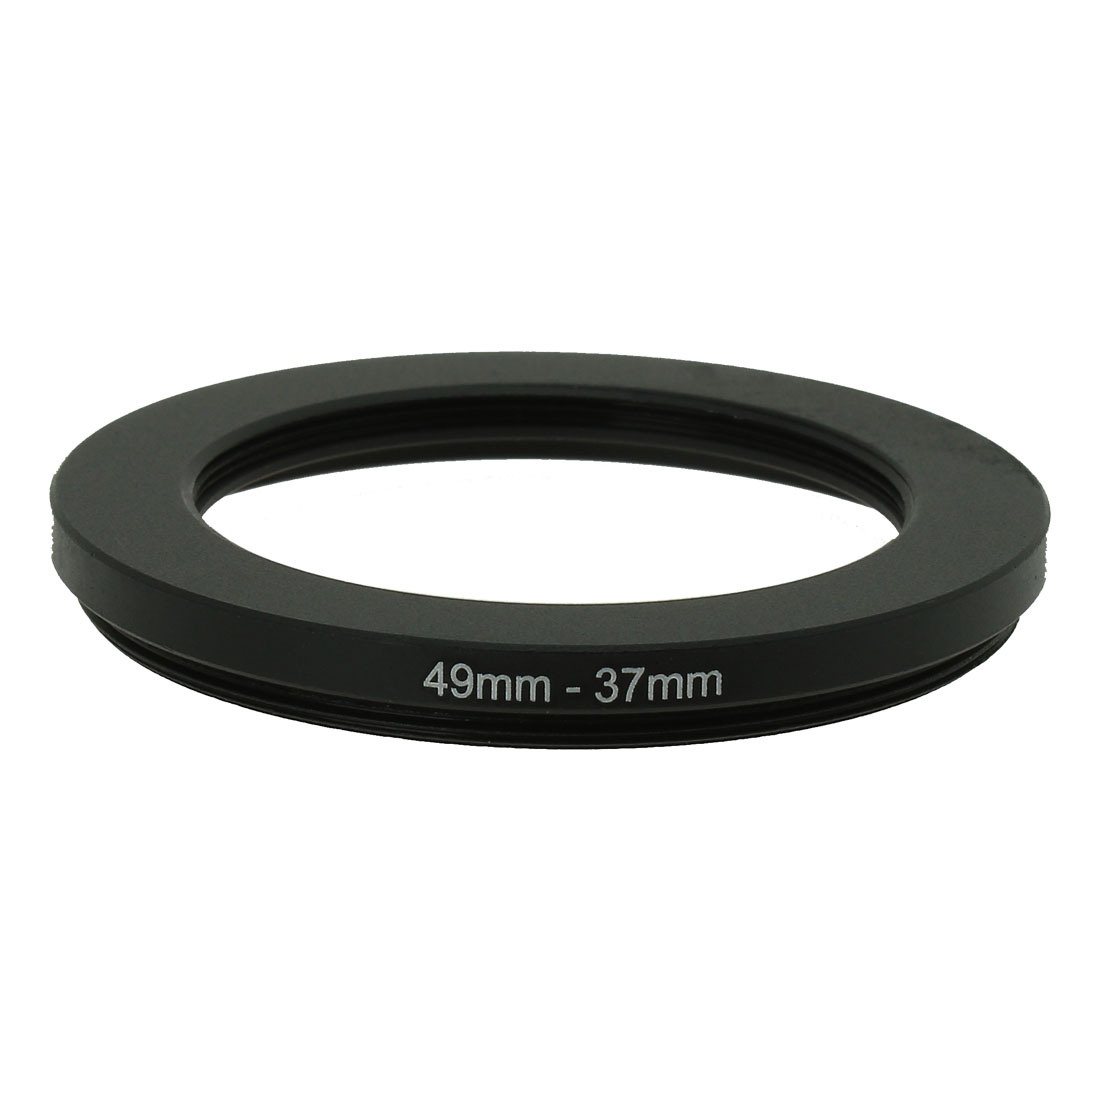 49mm-37mm 49mm to 37mm Black Step Down Ring Adapter for DSLR Camera